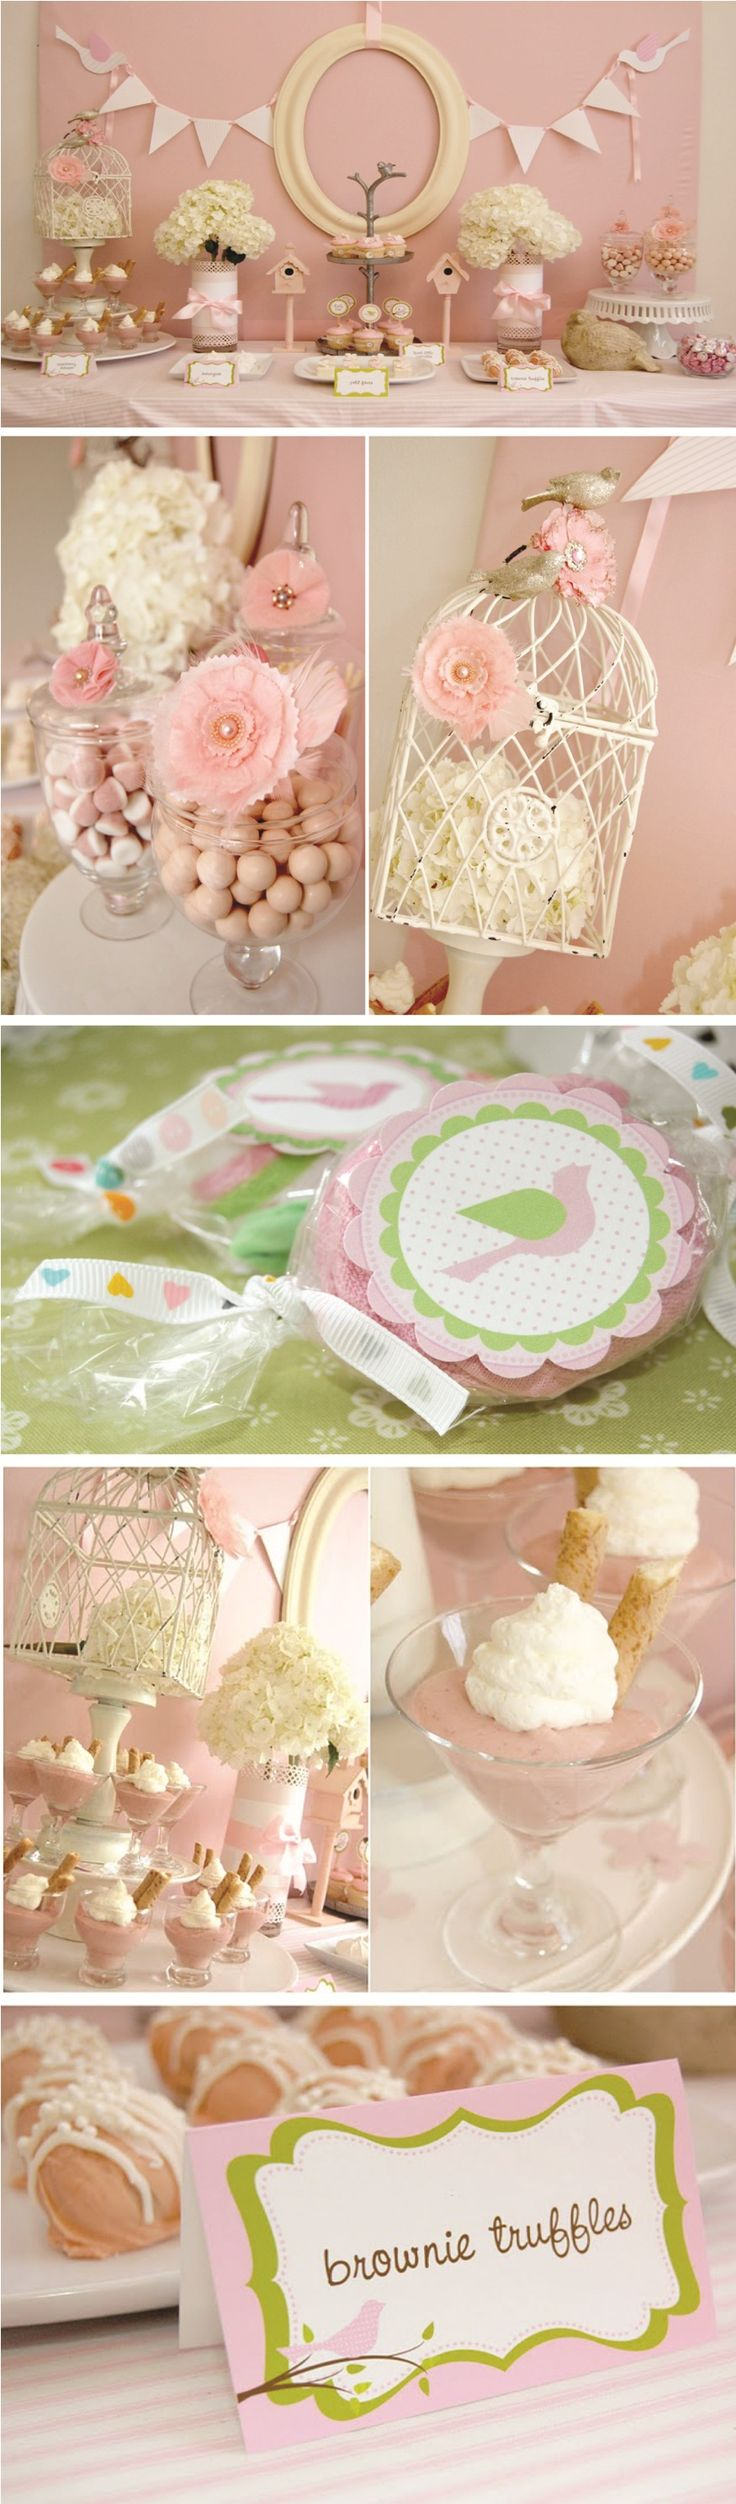 I came across this beautiful Pink Birdie themed baby shower by Frog Prince Paperie last week and I could not wait to share it. Owner and designer, Paula Biggs, spared no detail when it came to cre...